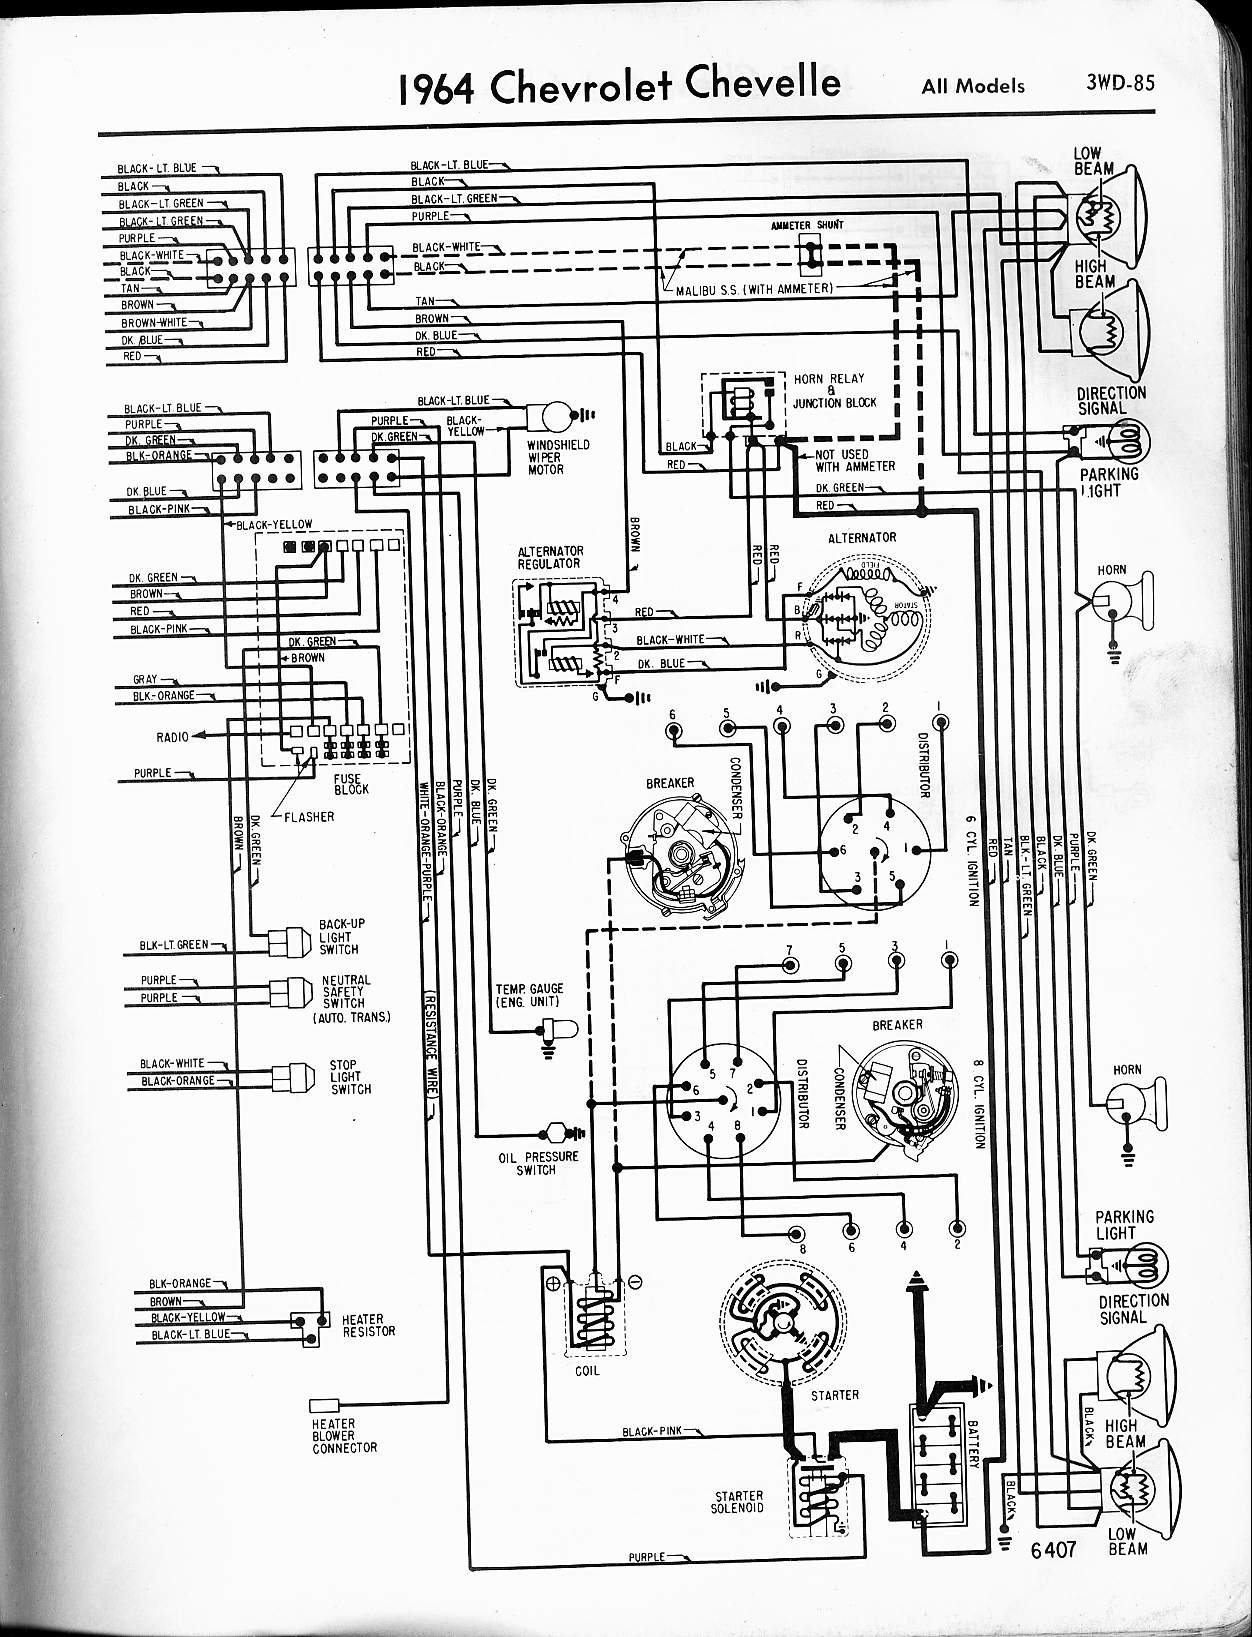 MWireChev64_3WD 085 chevy diagrams 65 chevy truck wiring diagram at alyssarenee.co